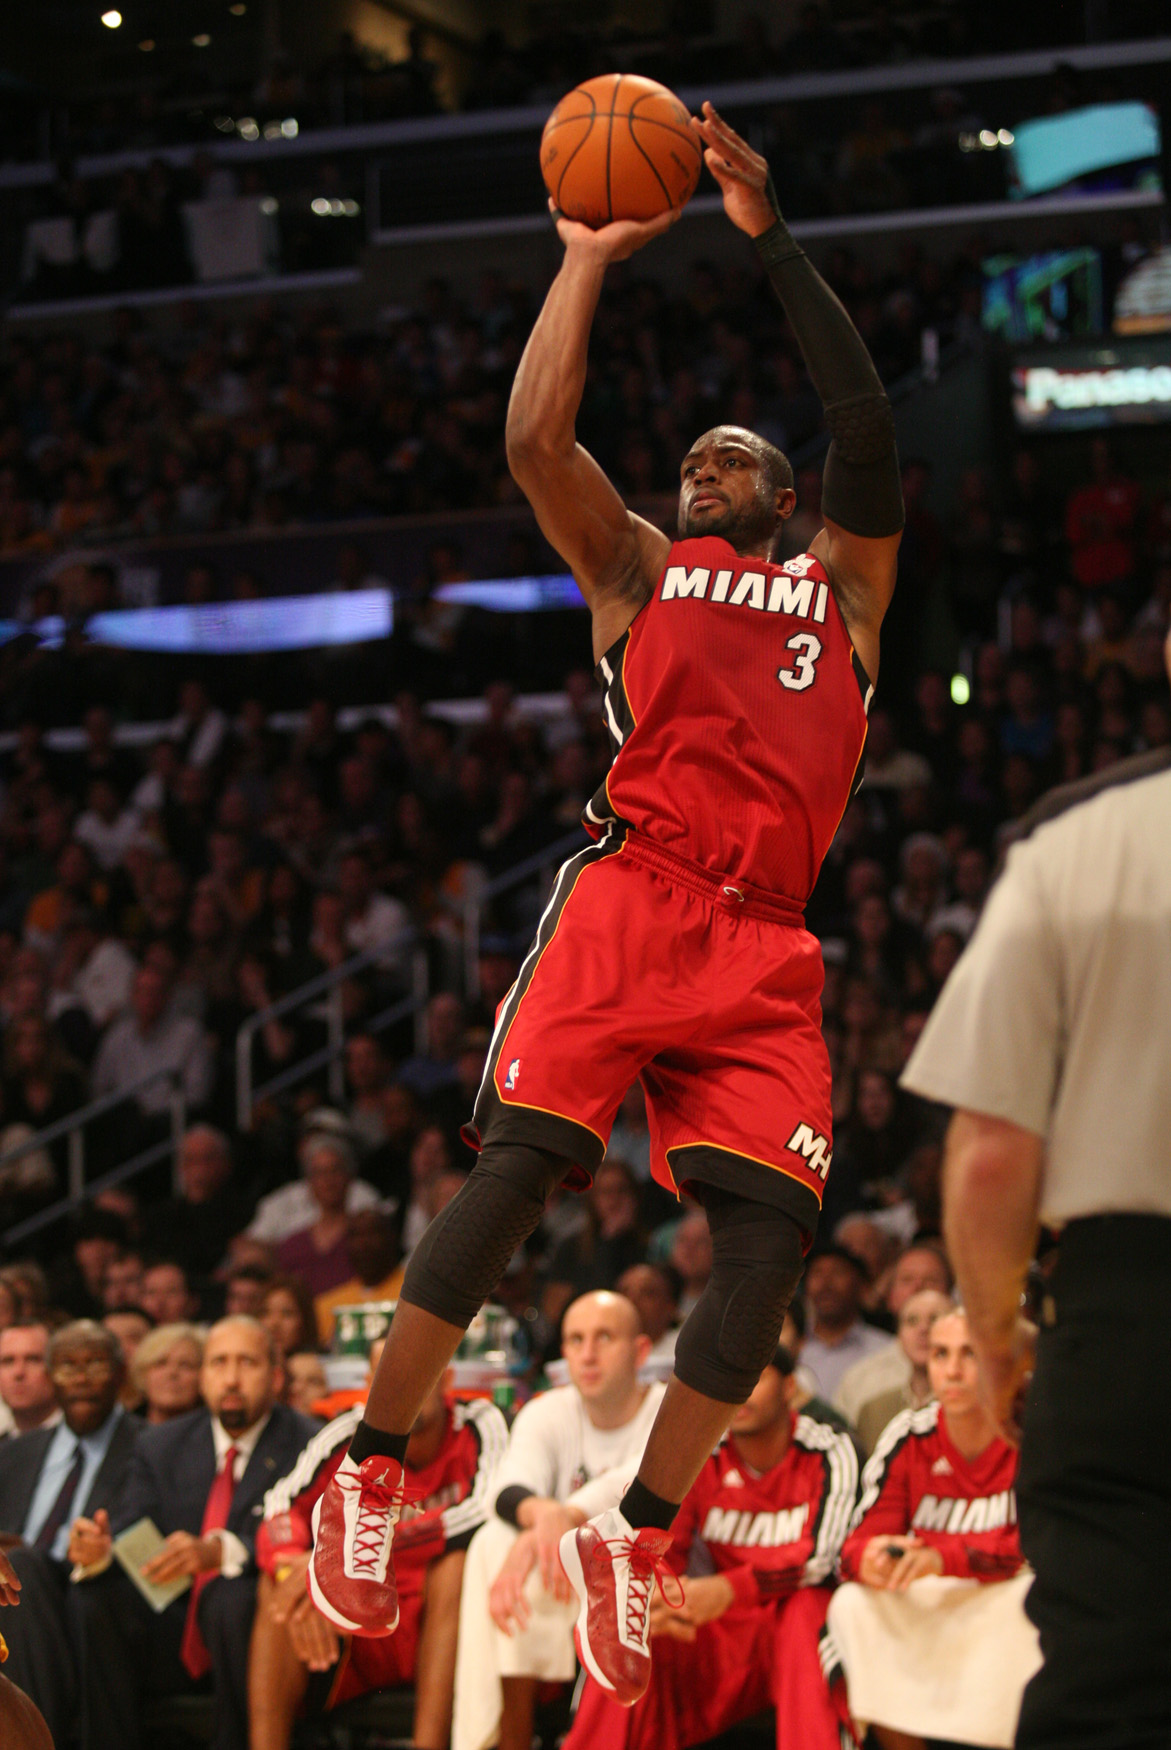 By Dennis J. Freeman It was just a matter of time. The Miami Heat's Dwyane Wade has been heating up...